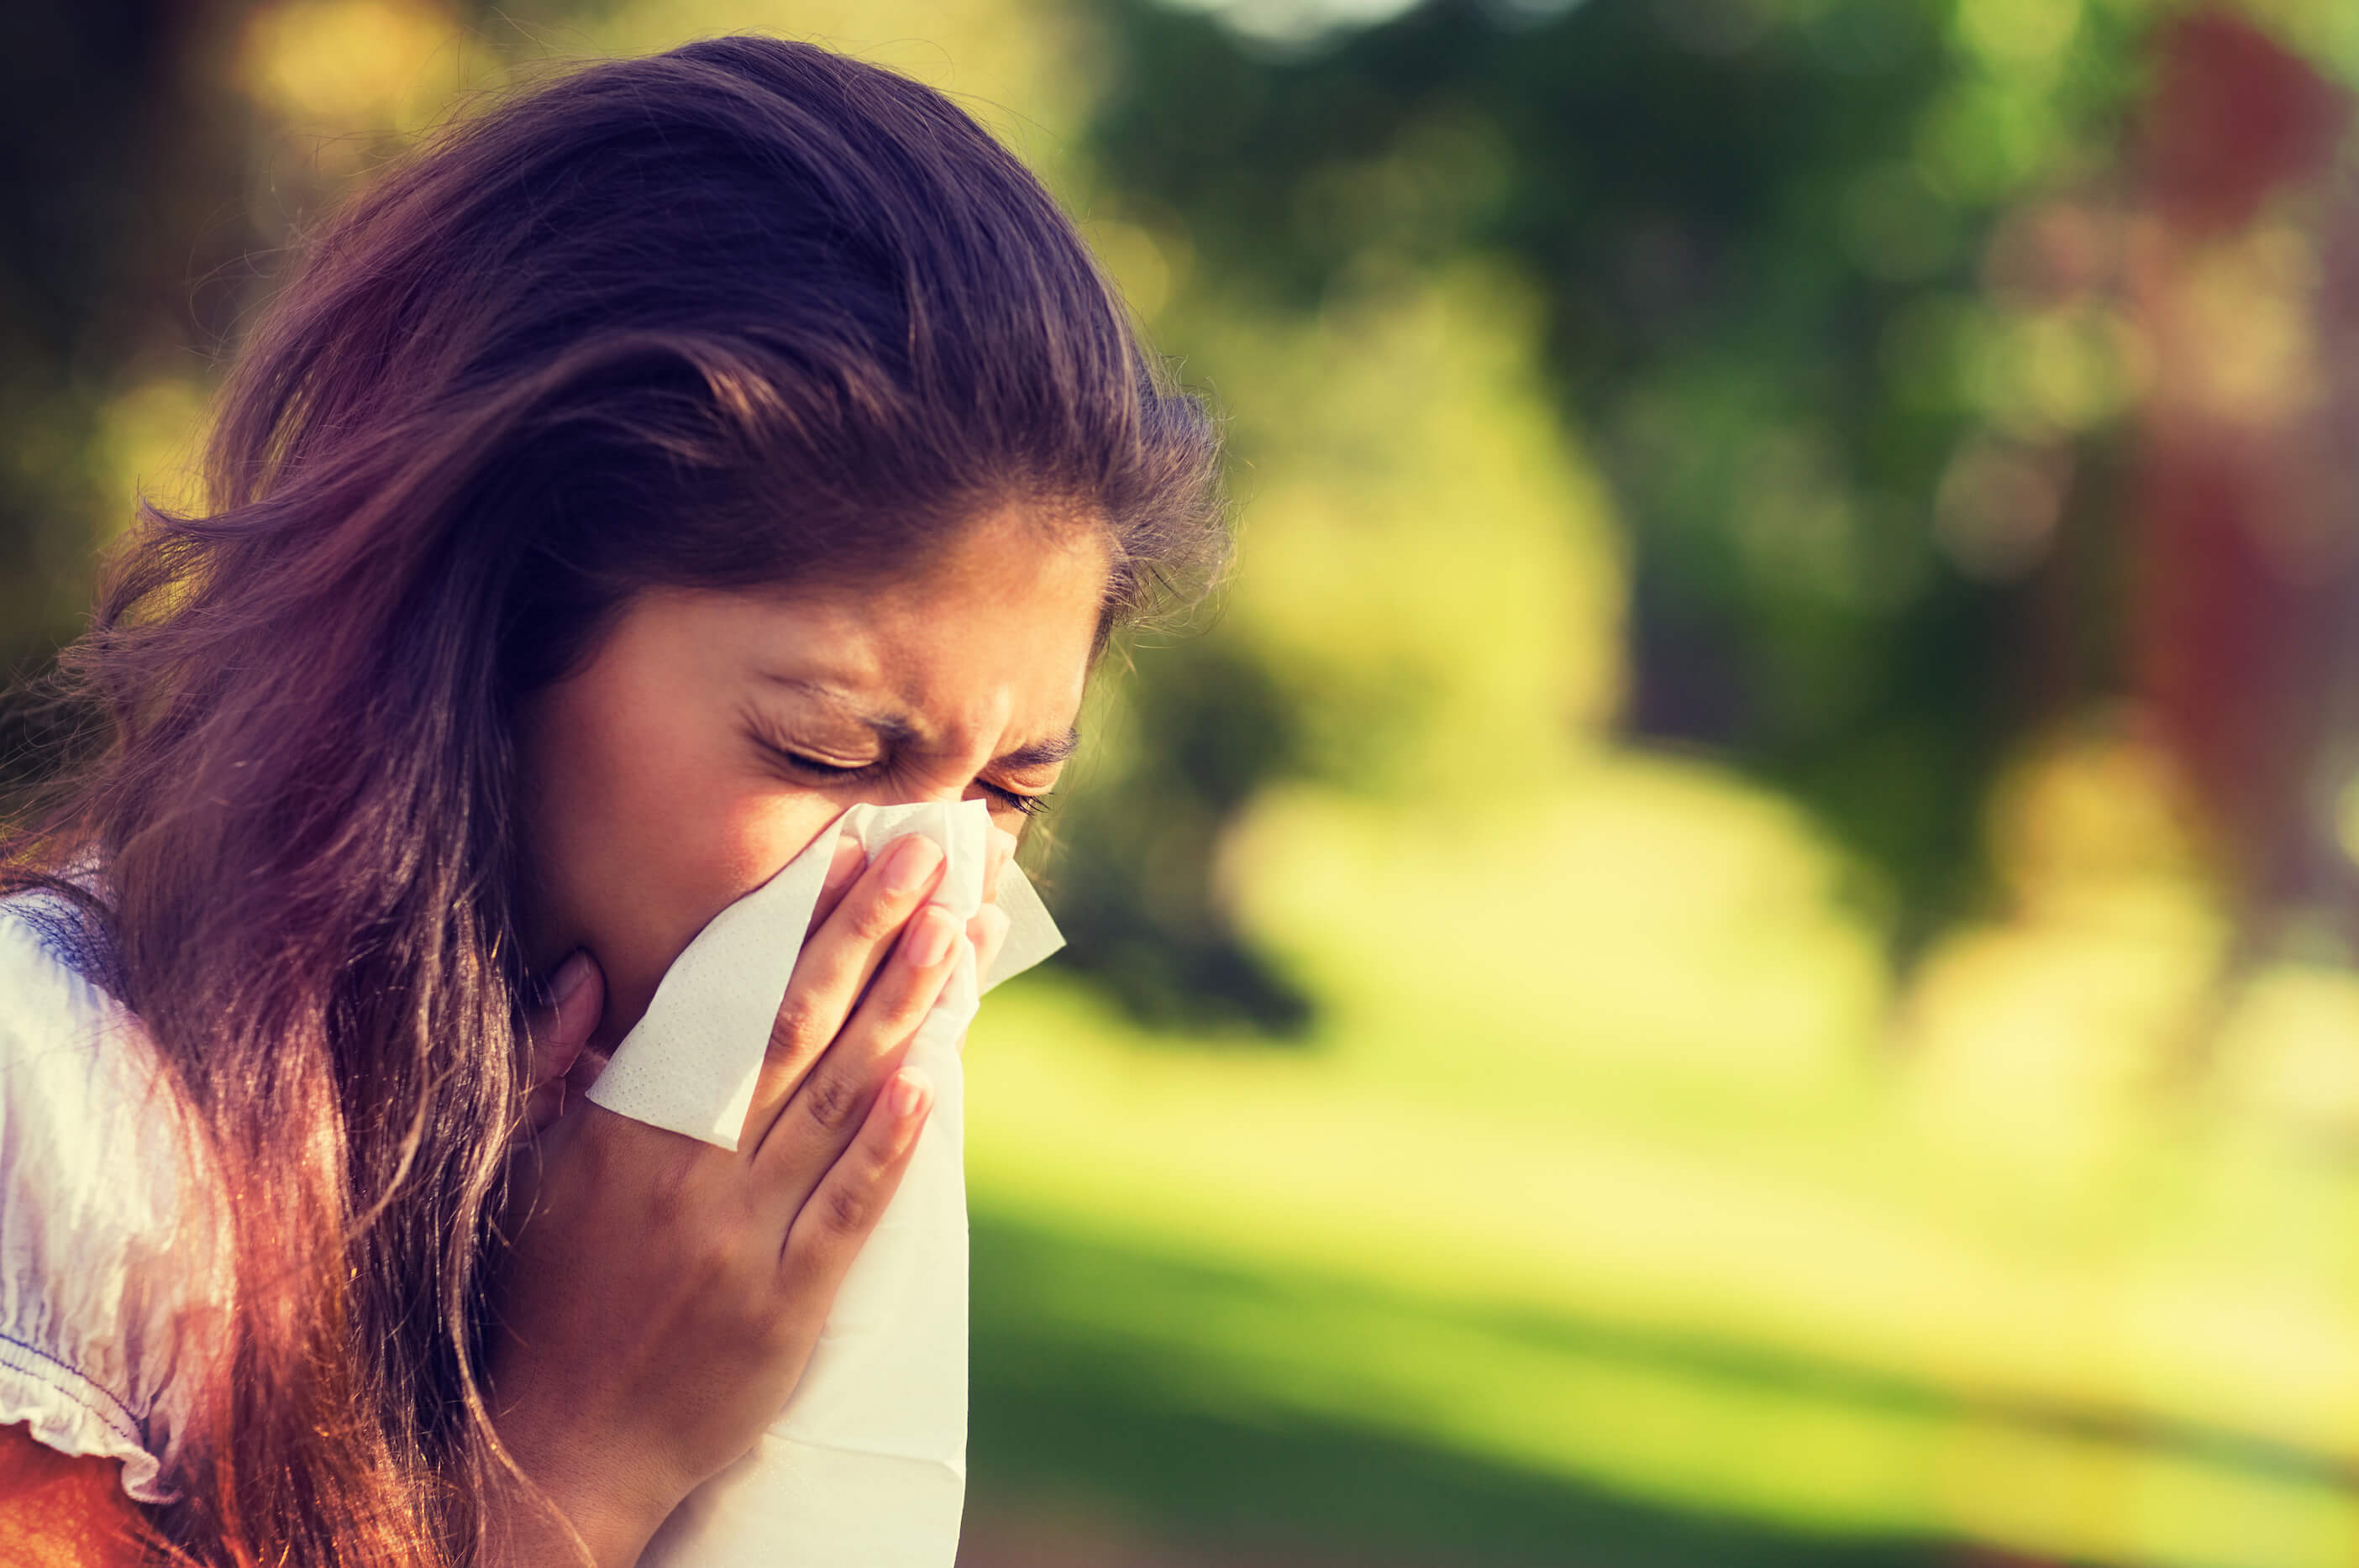 A woman experiencing nasal allergies outdoors.